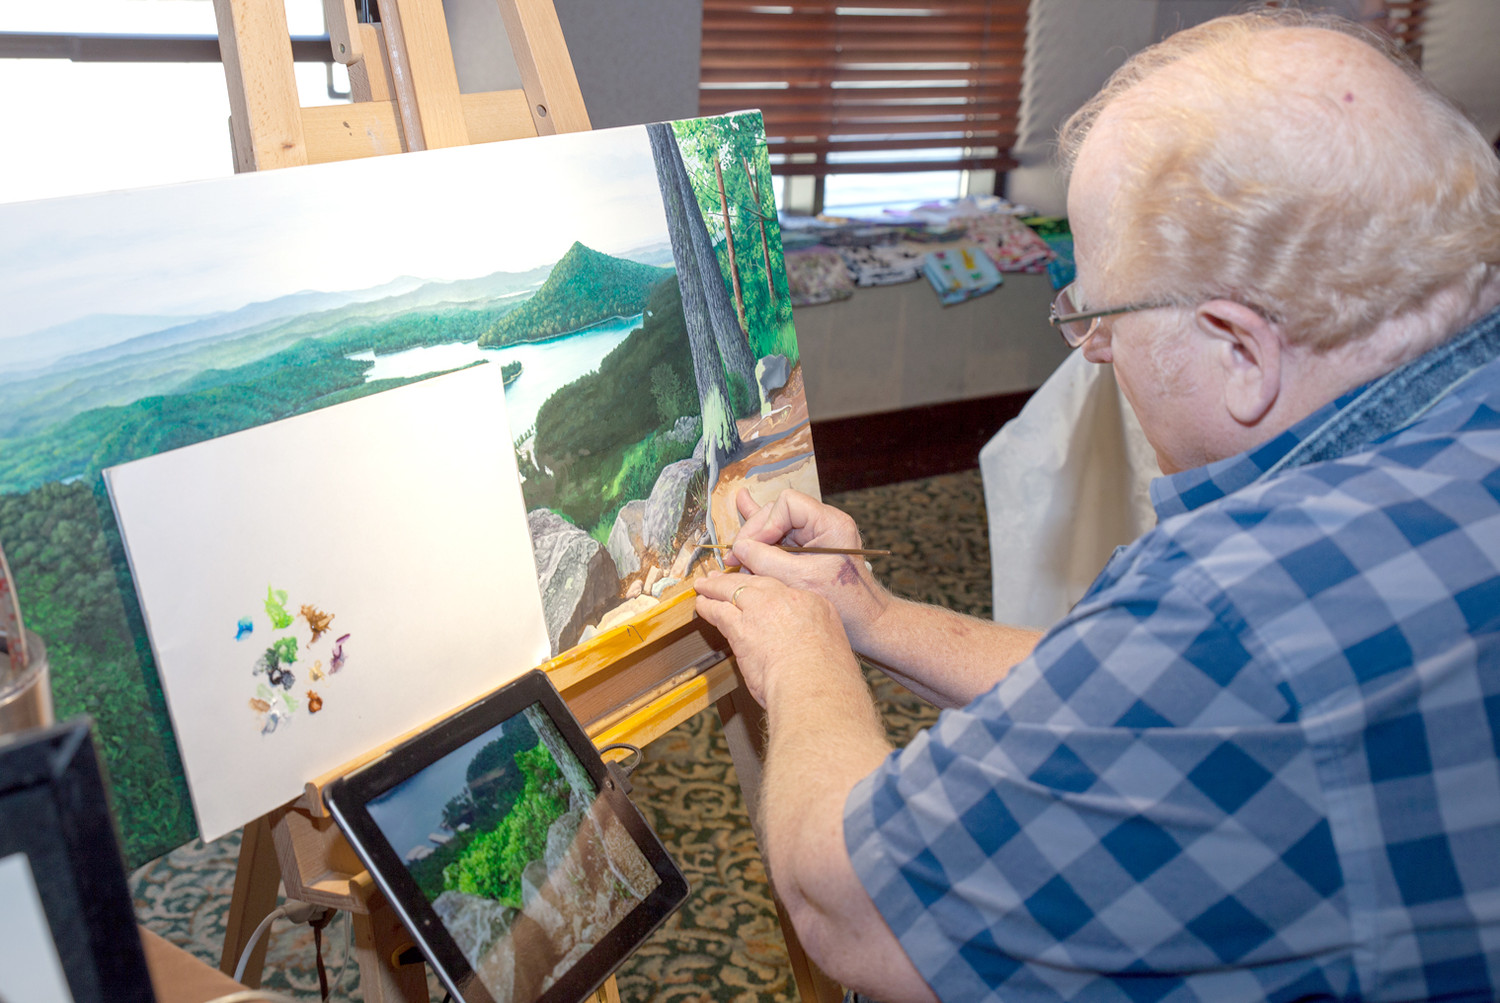 ONE OF THE EXHIBITING artists at the Artist Showcase portion of the event at the Museum was Mike Ivey, right, of Mike Ivey Art. He was working on a landscape during the show on Sunday.